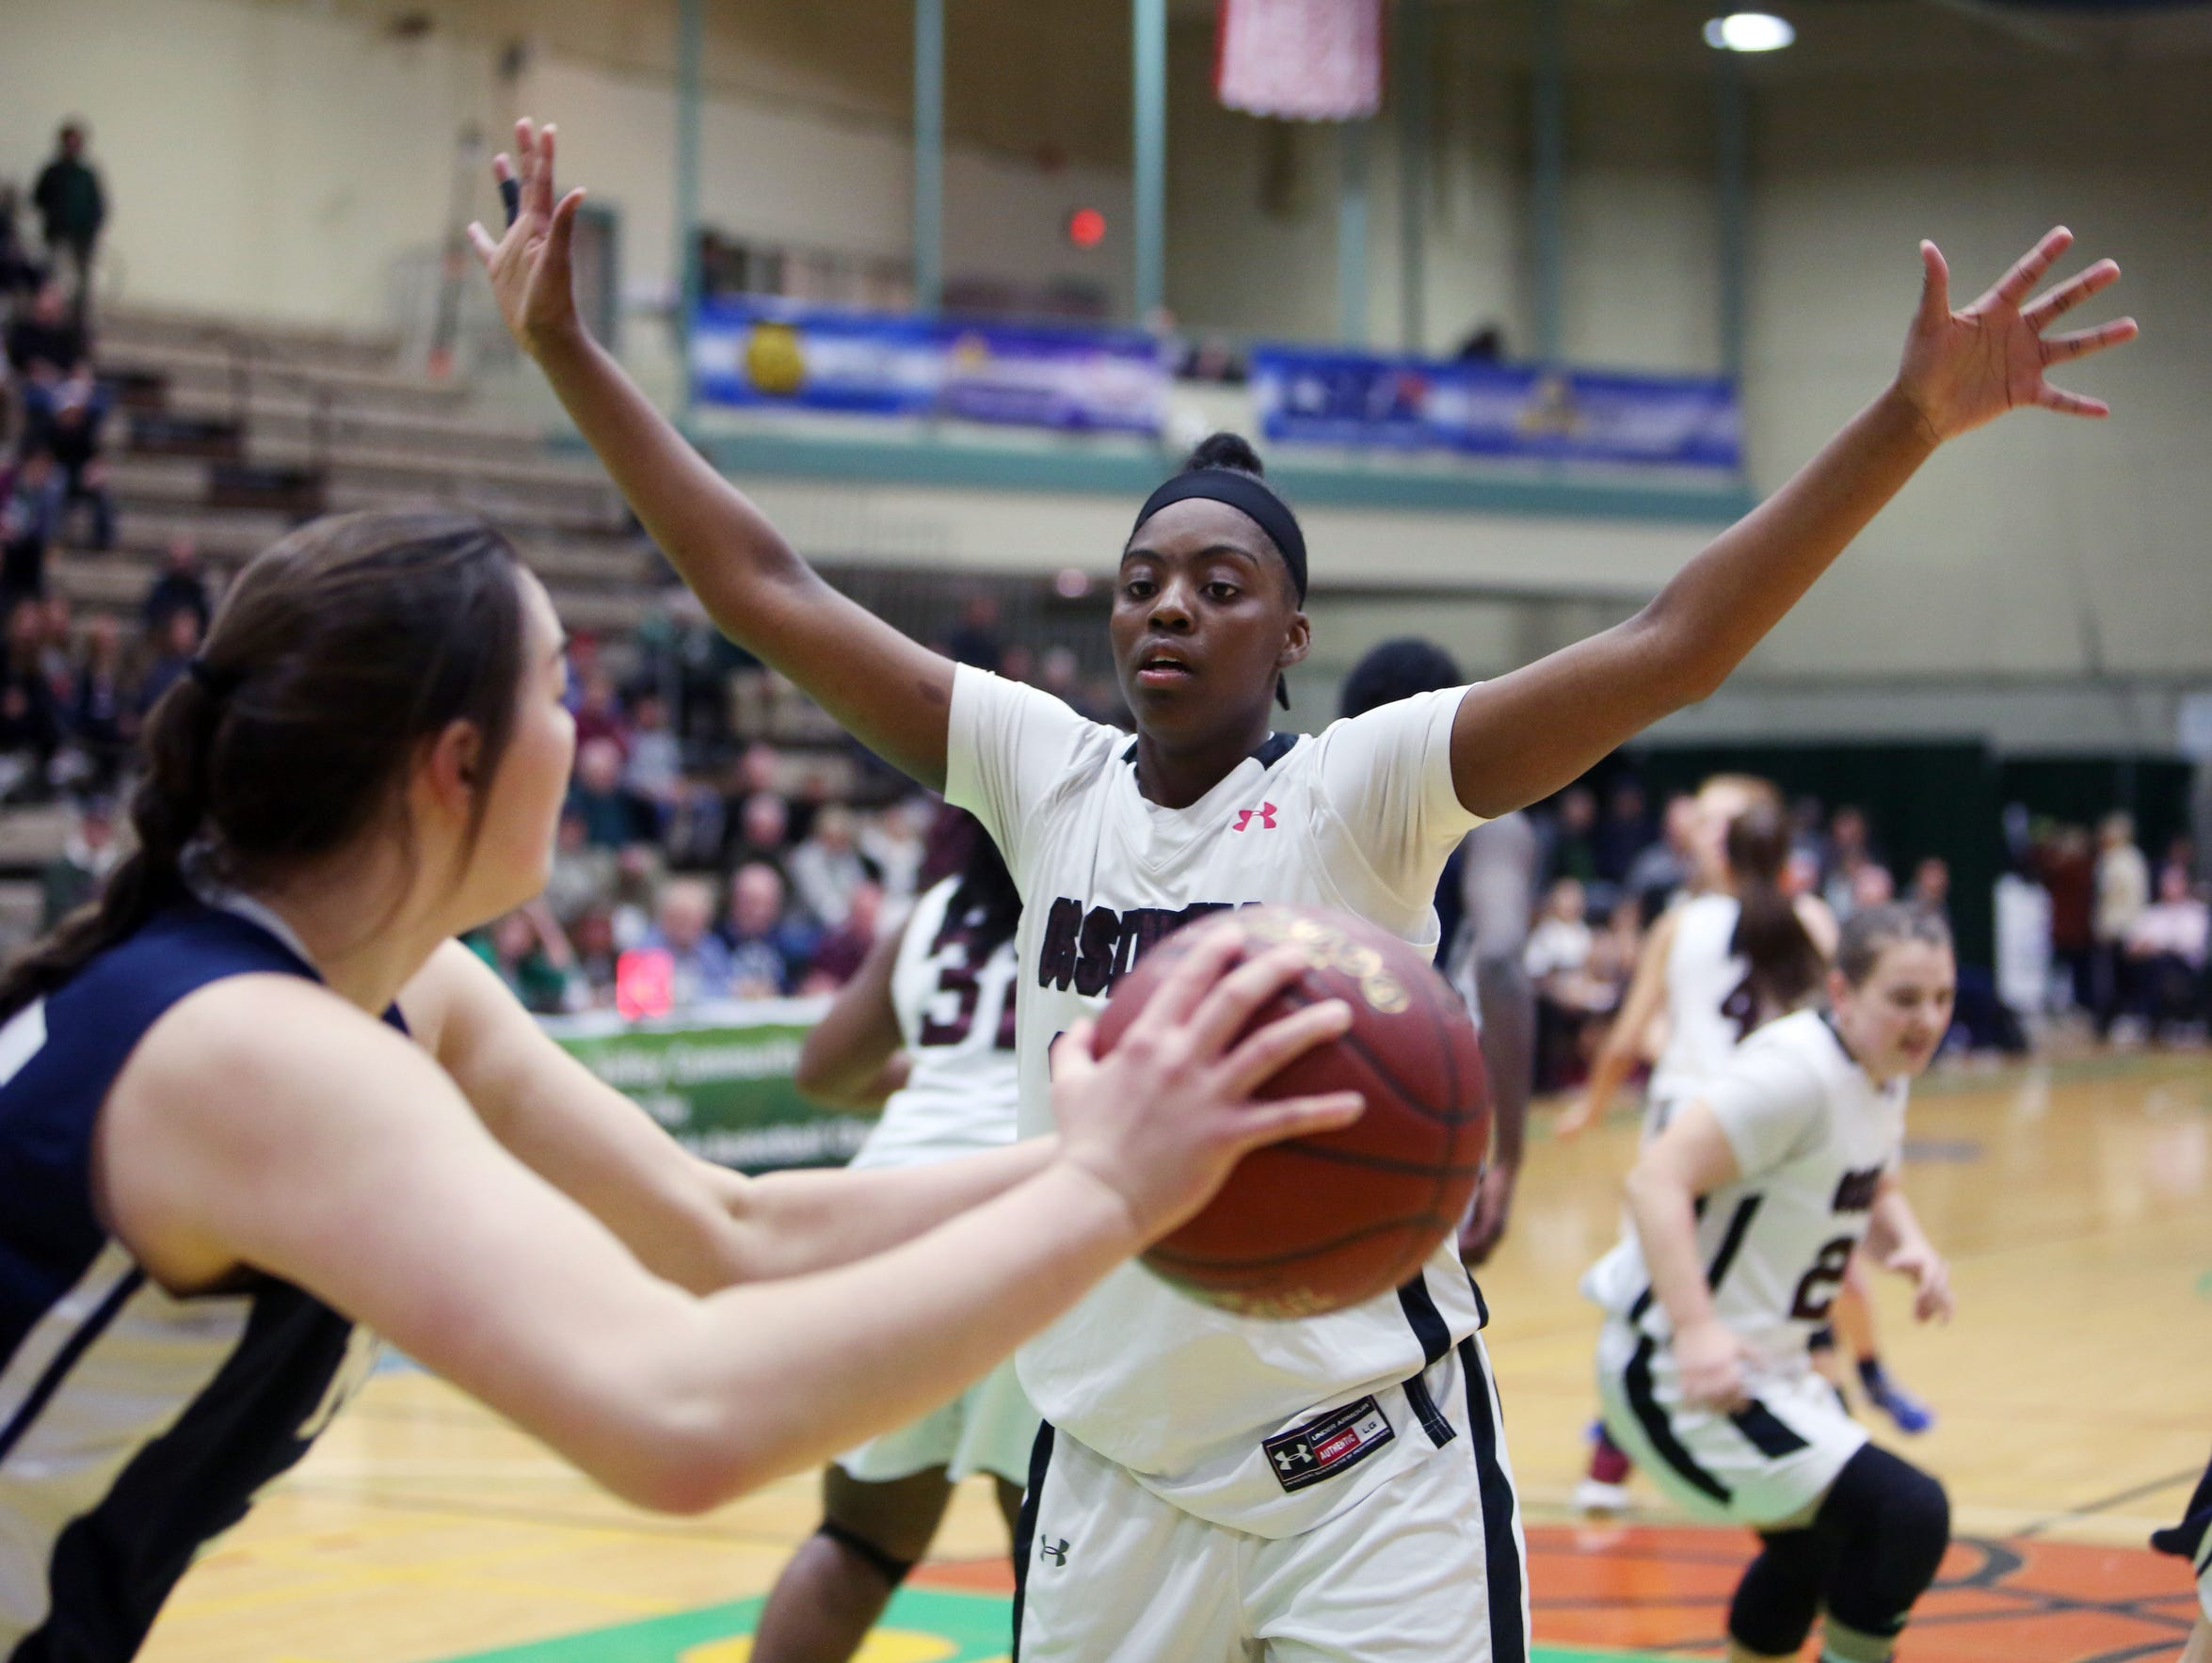 Ossining defeated Our Lady of Mercy 76-70 in the girls